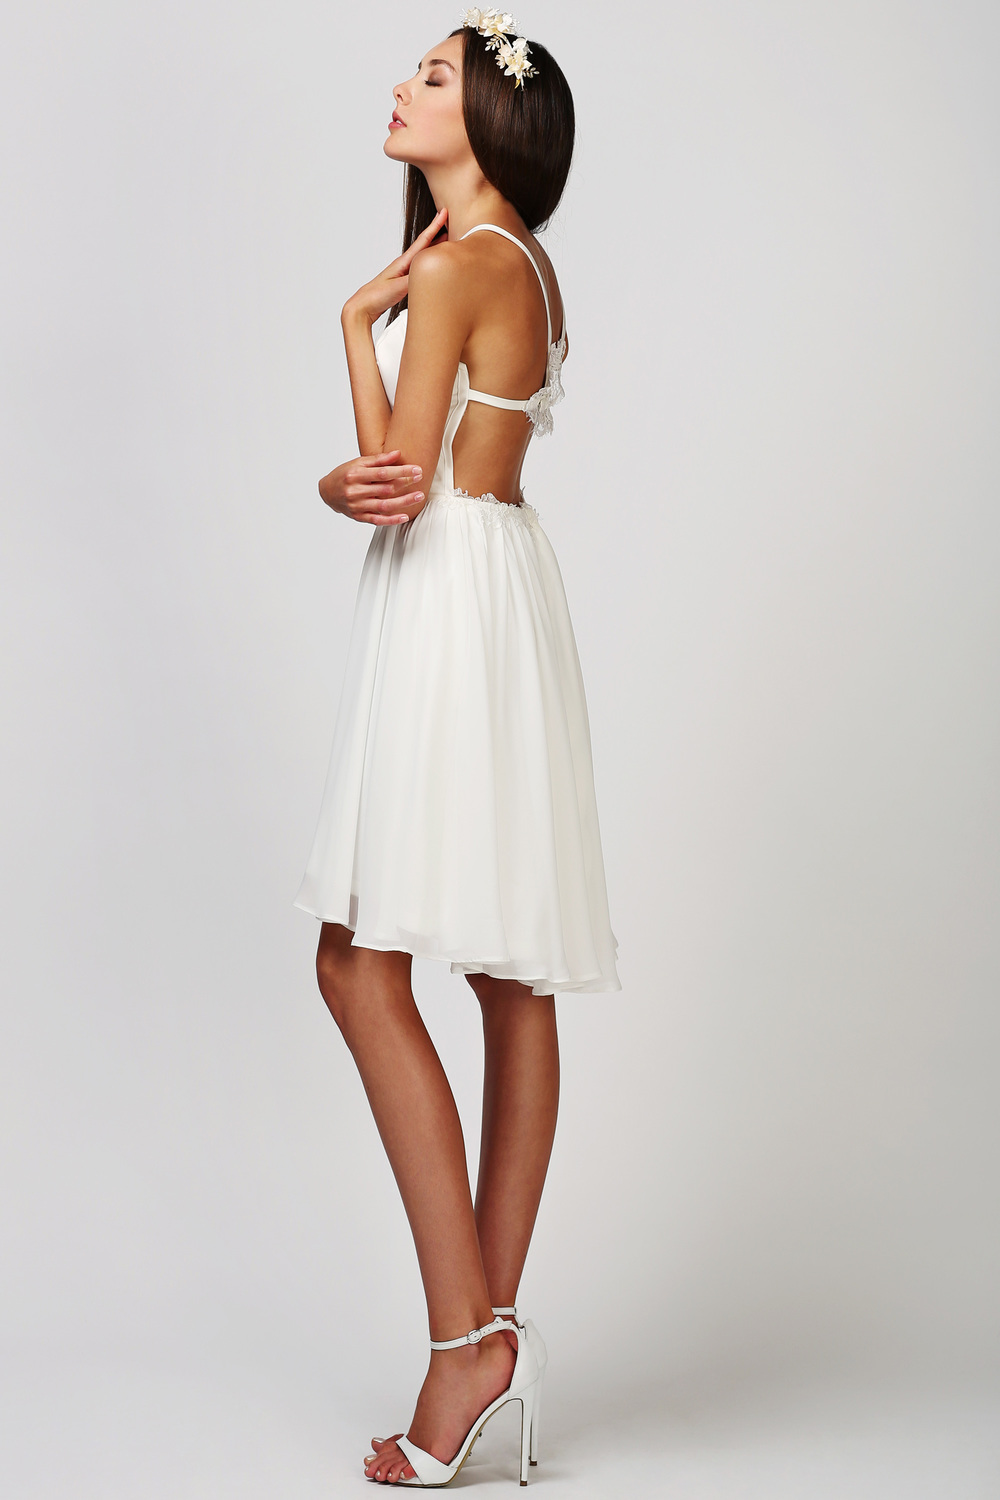 LOVE FIND CO. // The WHITE Dahlia Collection by LOVE FOUND TRUE